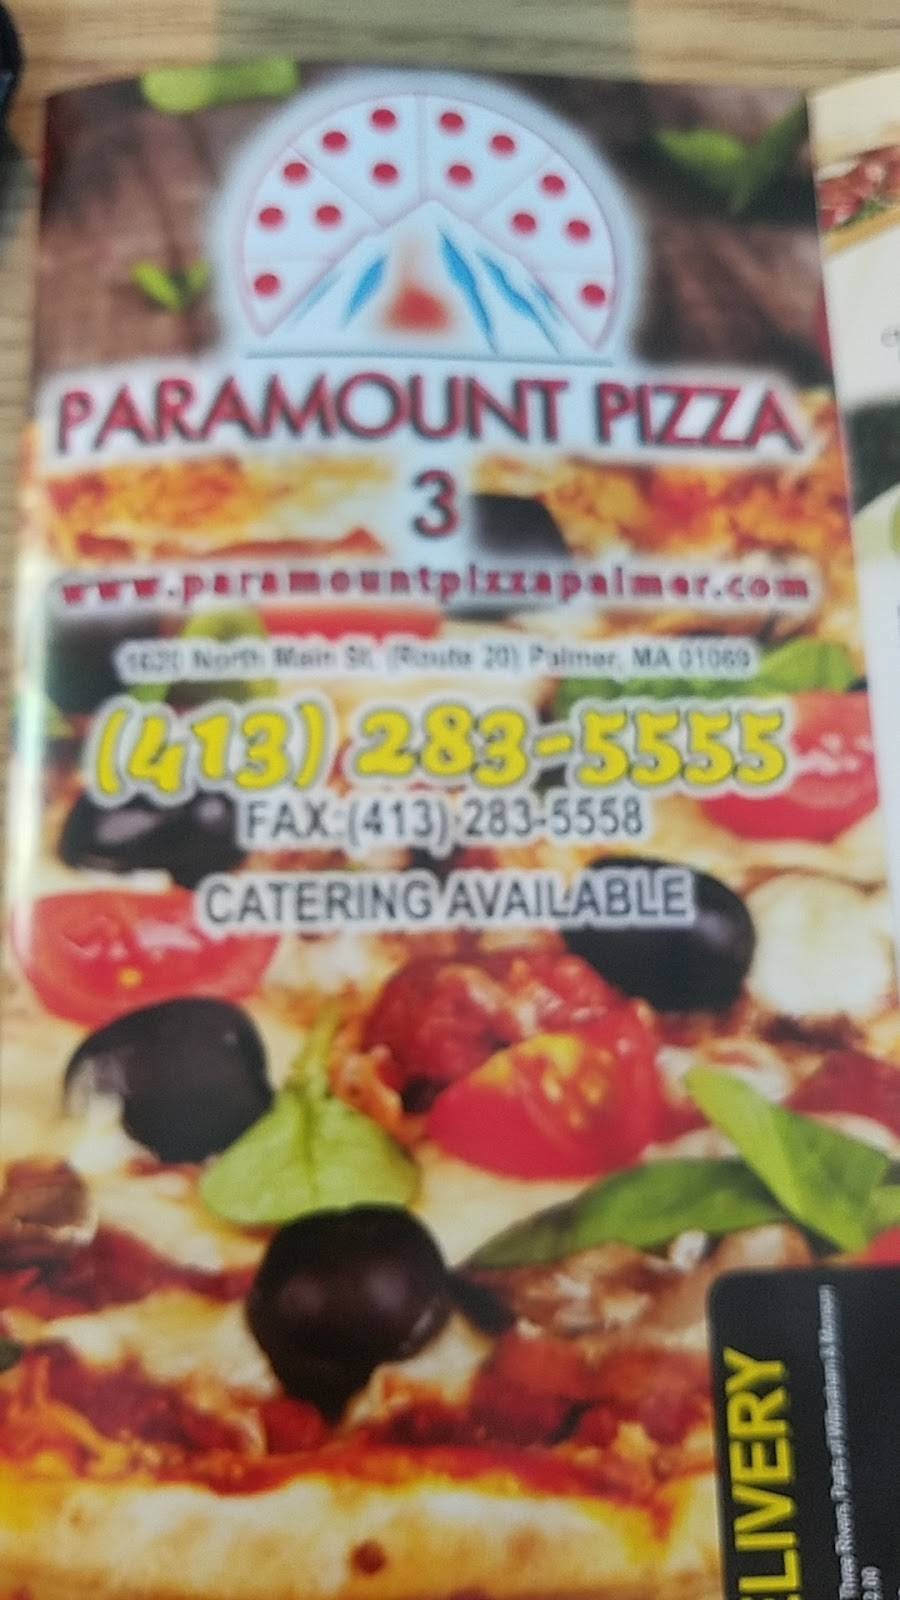 Paramount Pizza 3 | meal delivery | 1620 N Main St, Palmer, MA 01069, USA | 4132835555 OR +1 413-283-5555